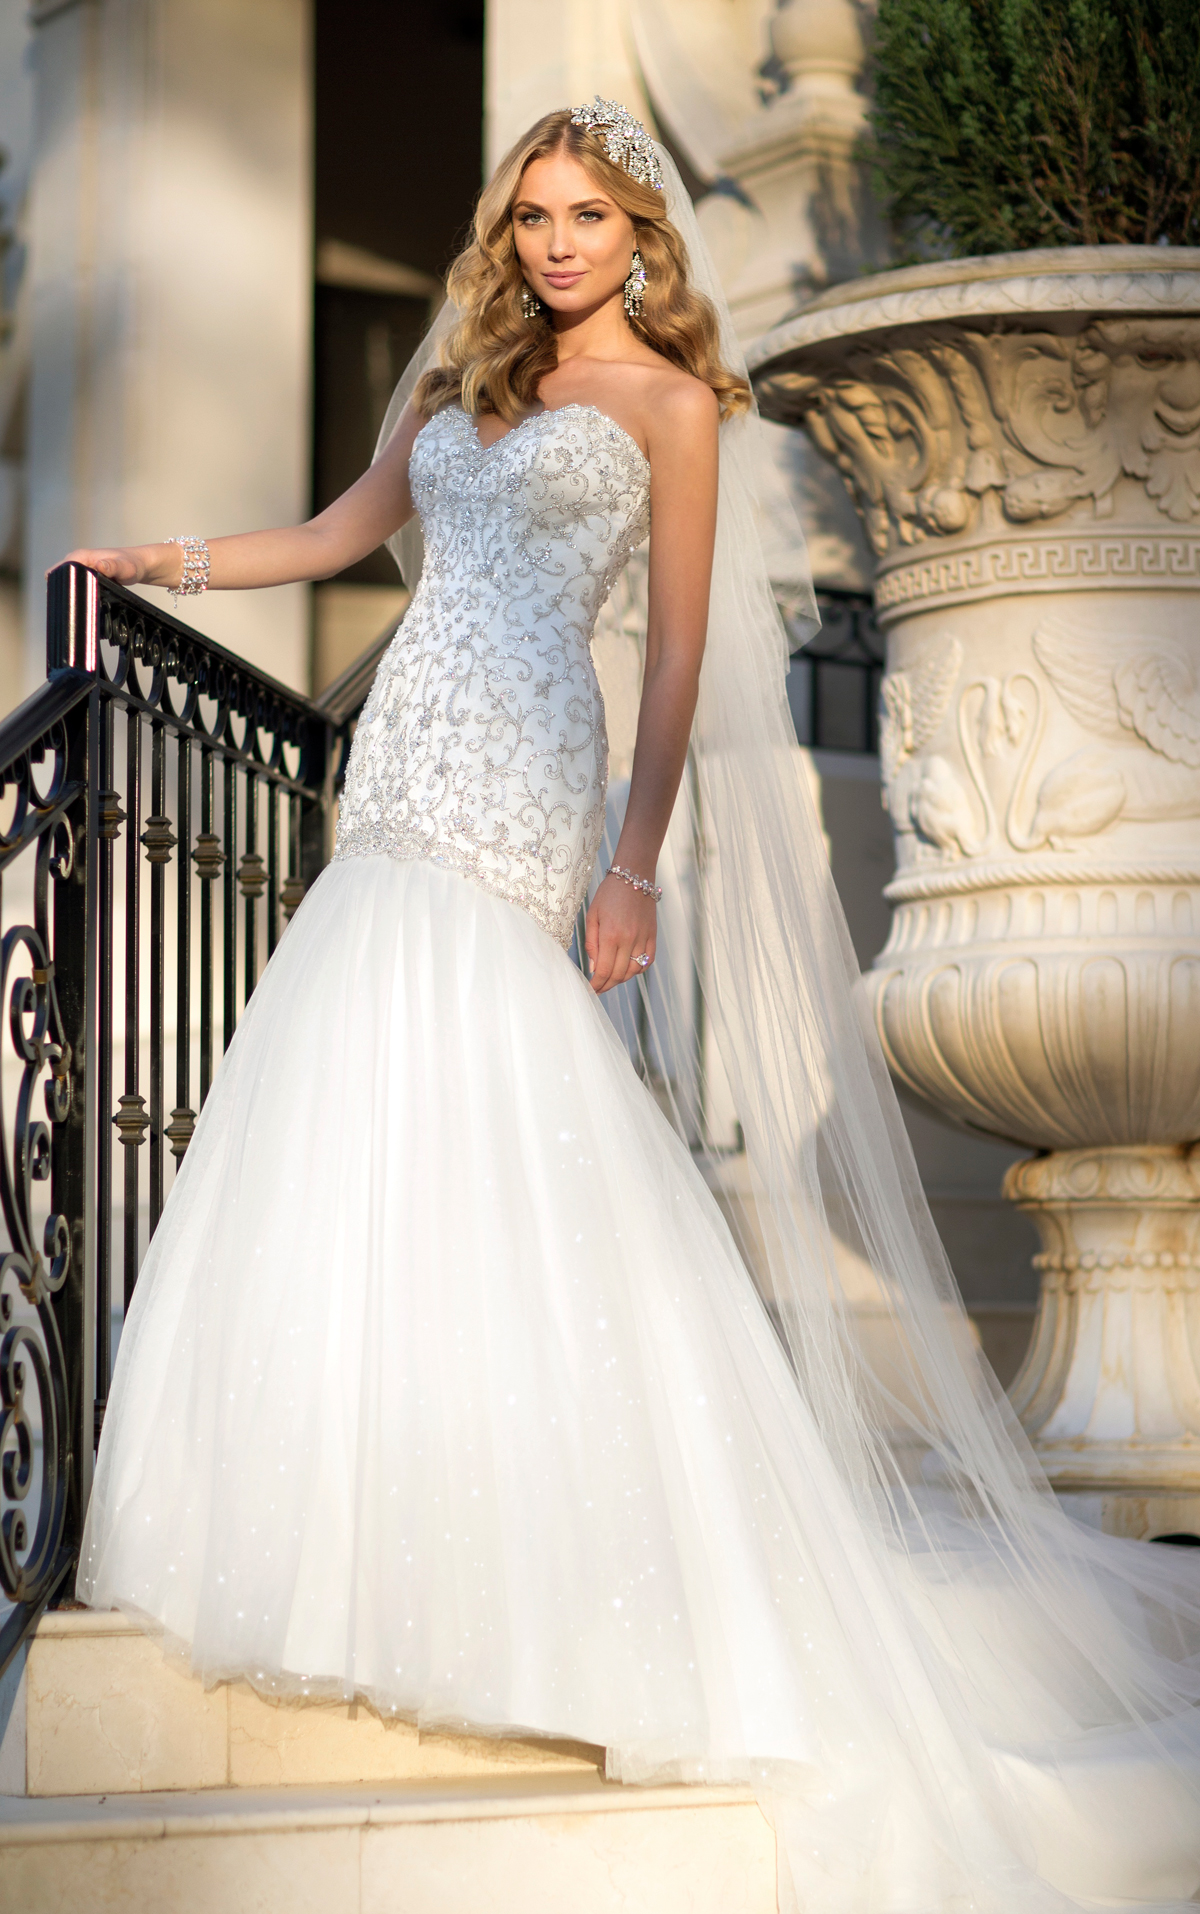 stella-york-wedding-dresses-2014-15-01152014